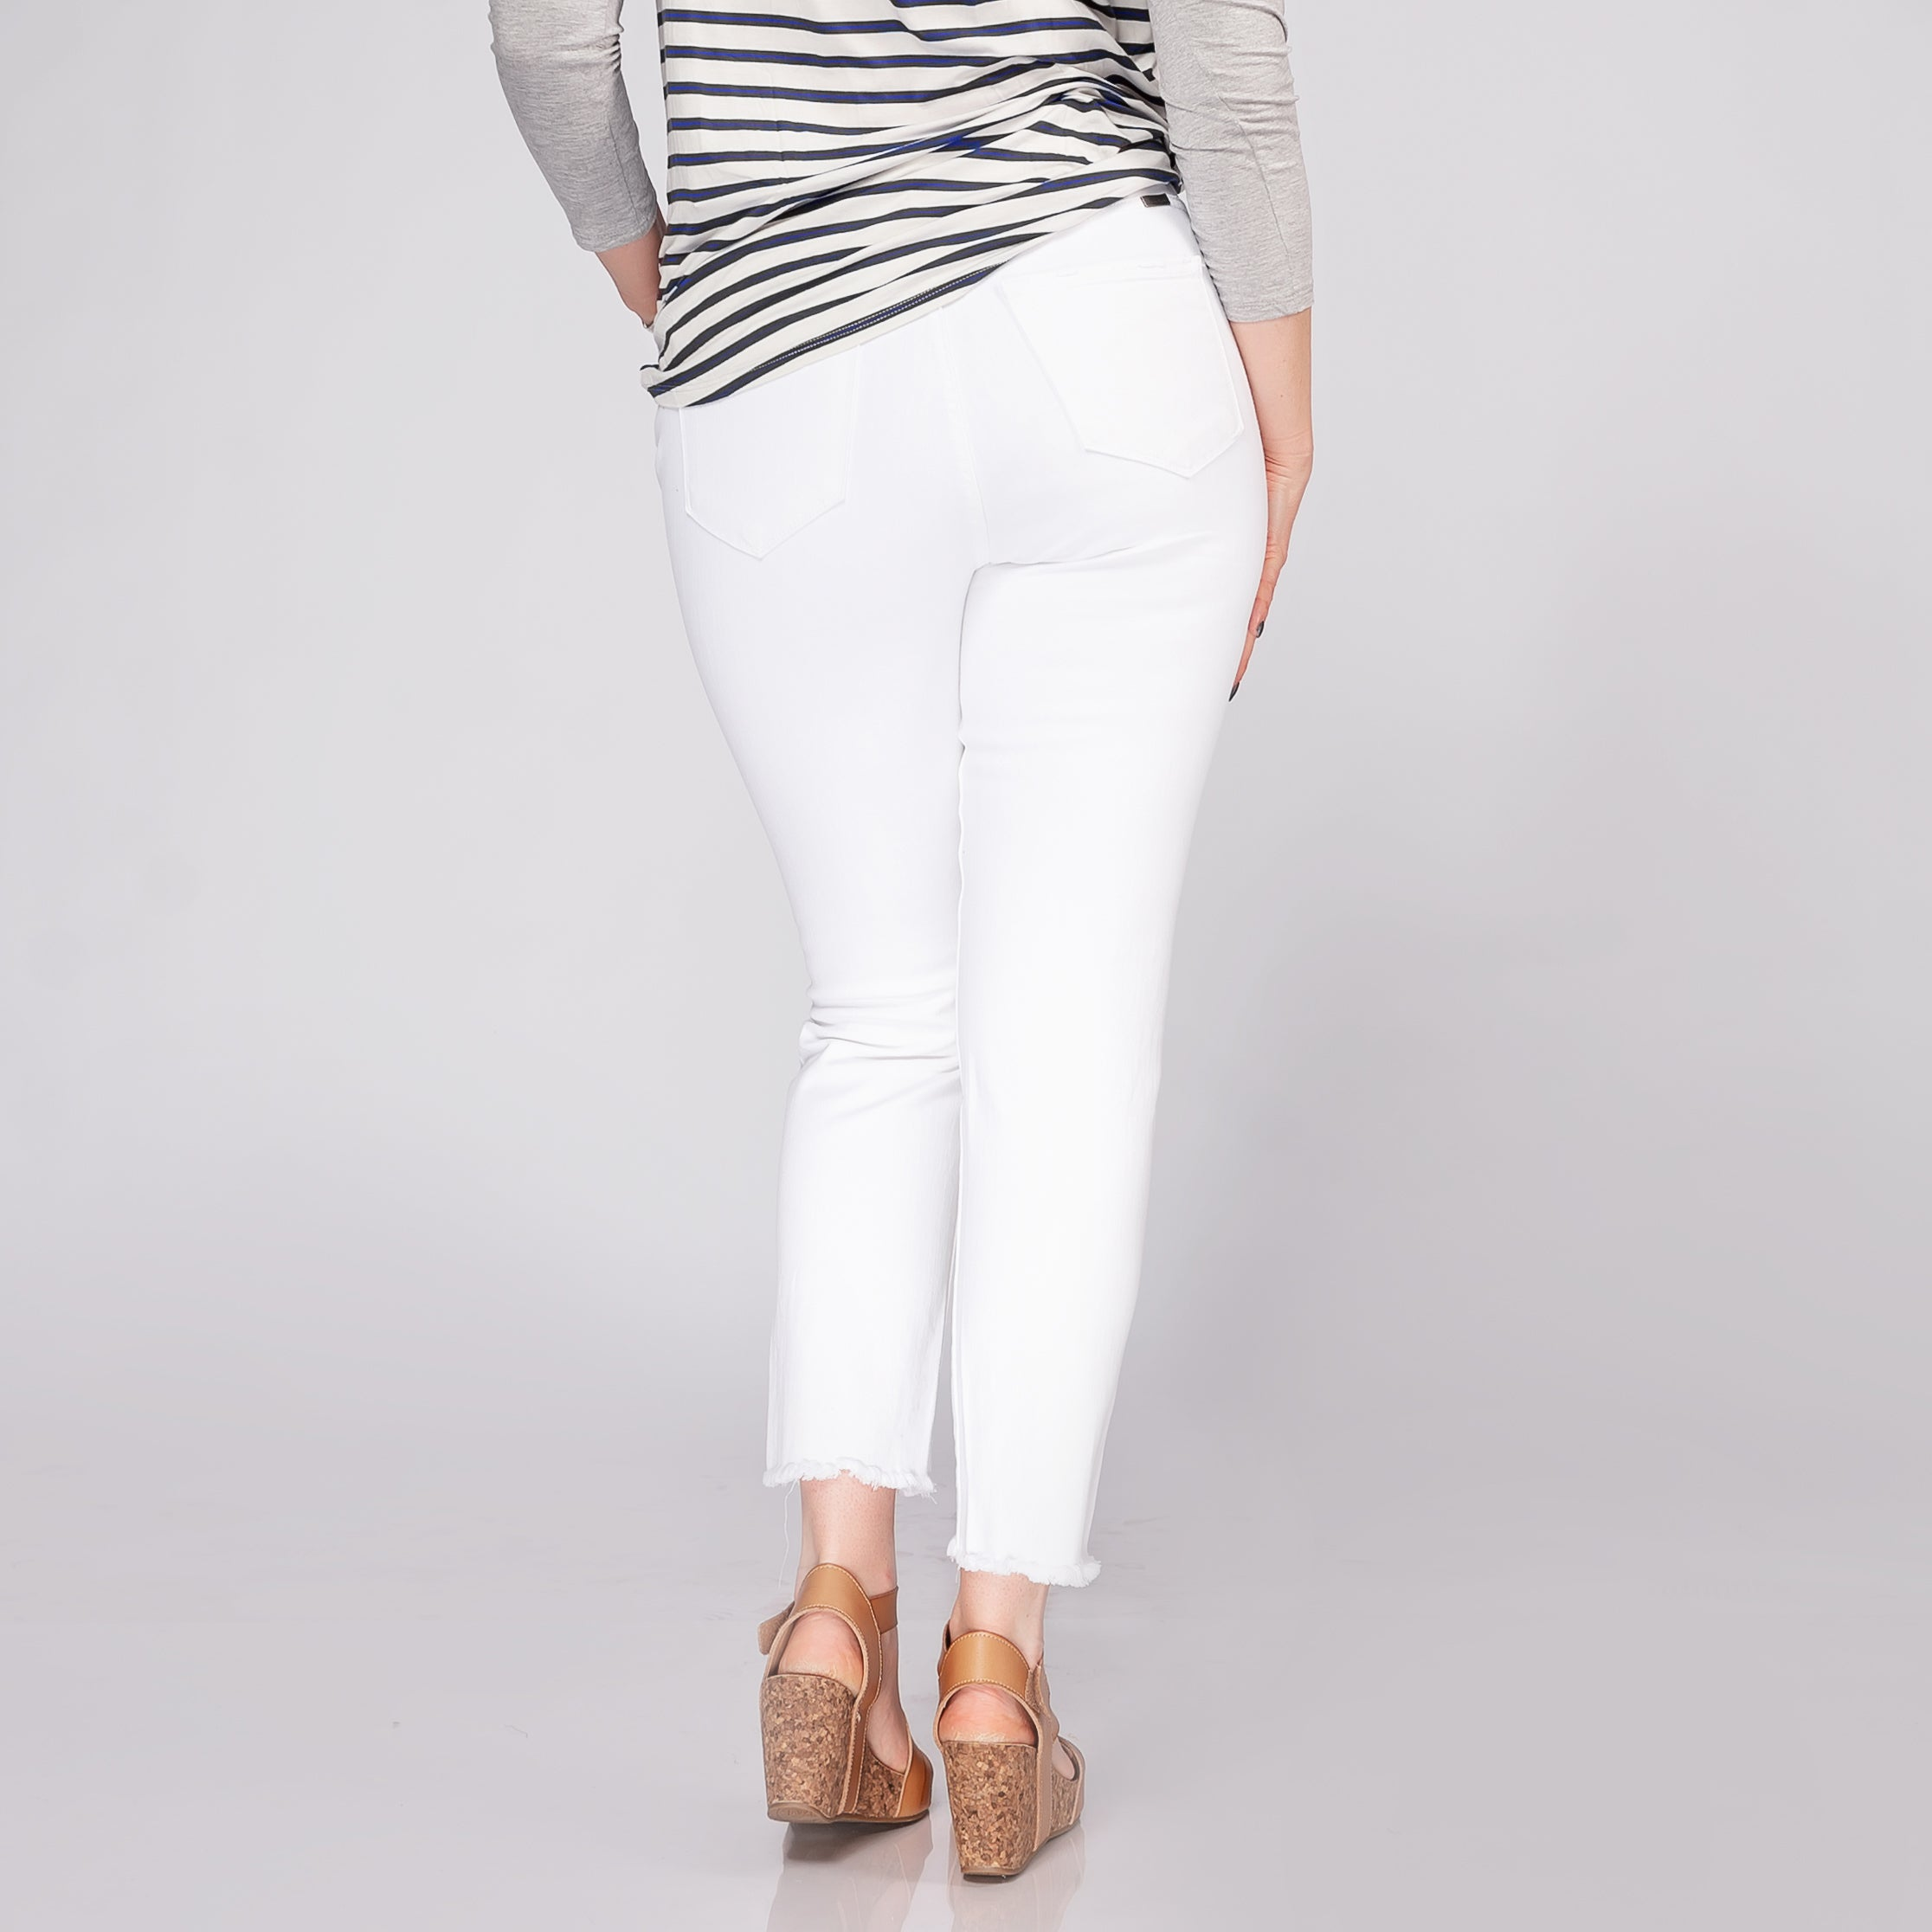 Kancan High Rise Classic White Skinny Jeans *Final Sale*